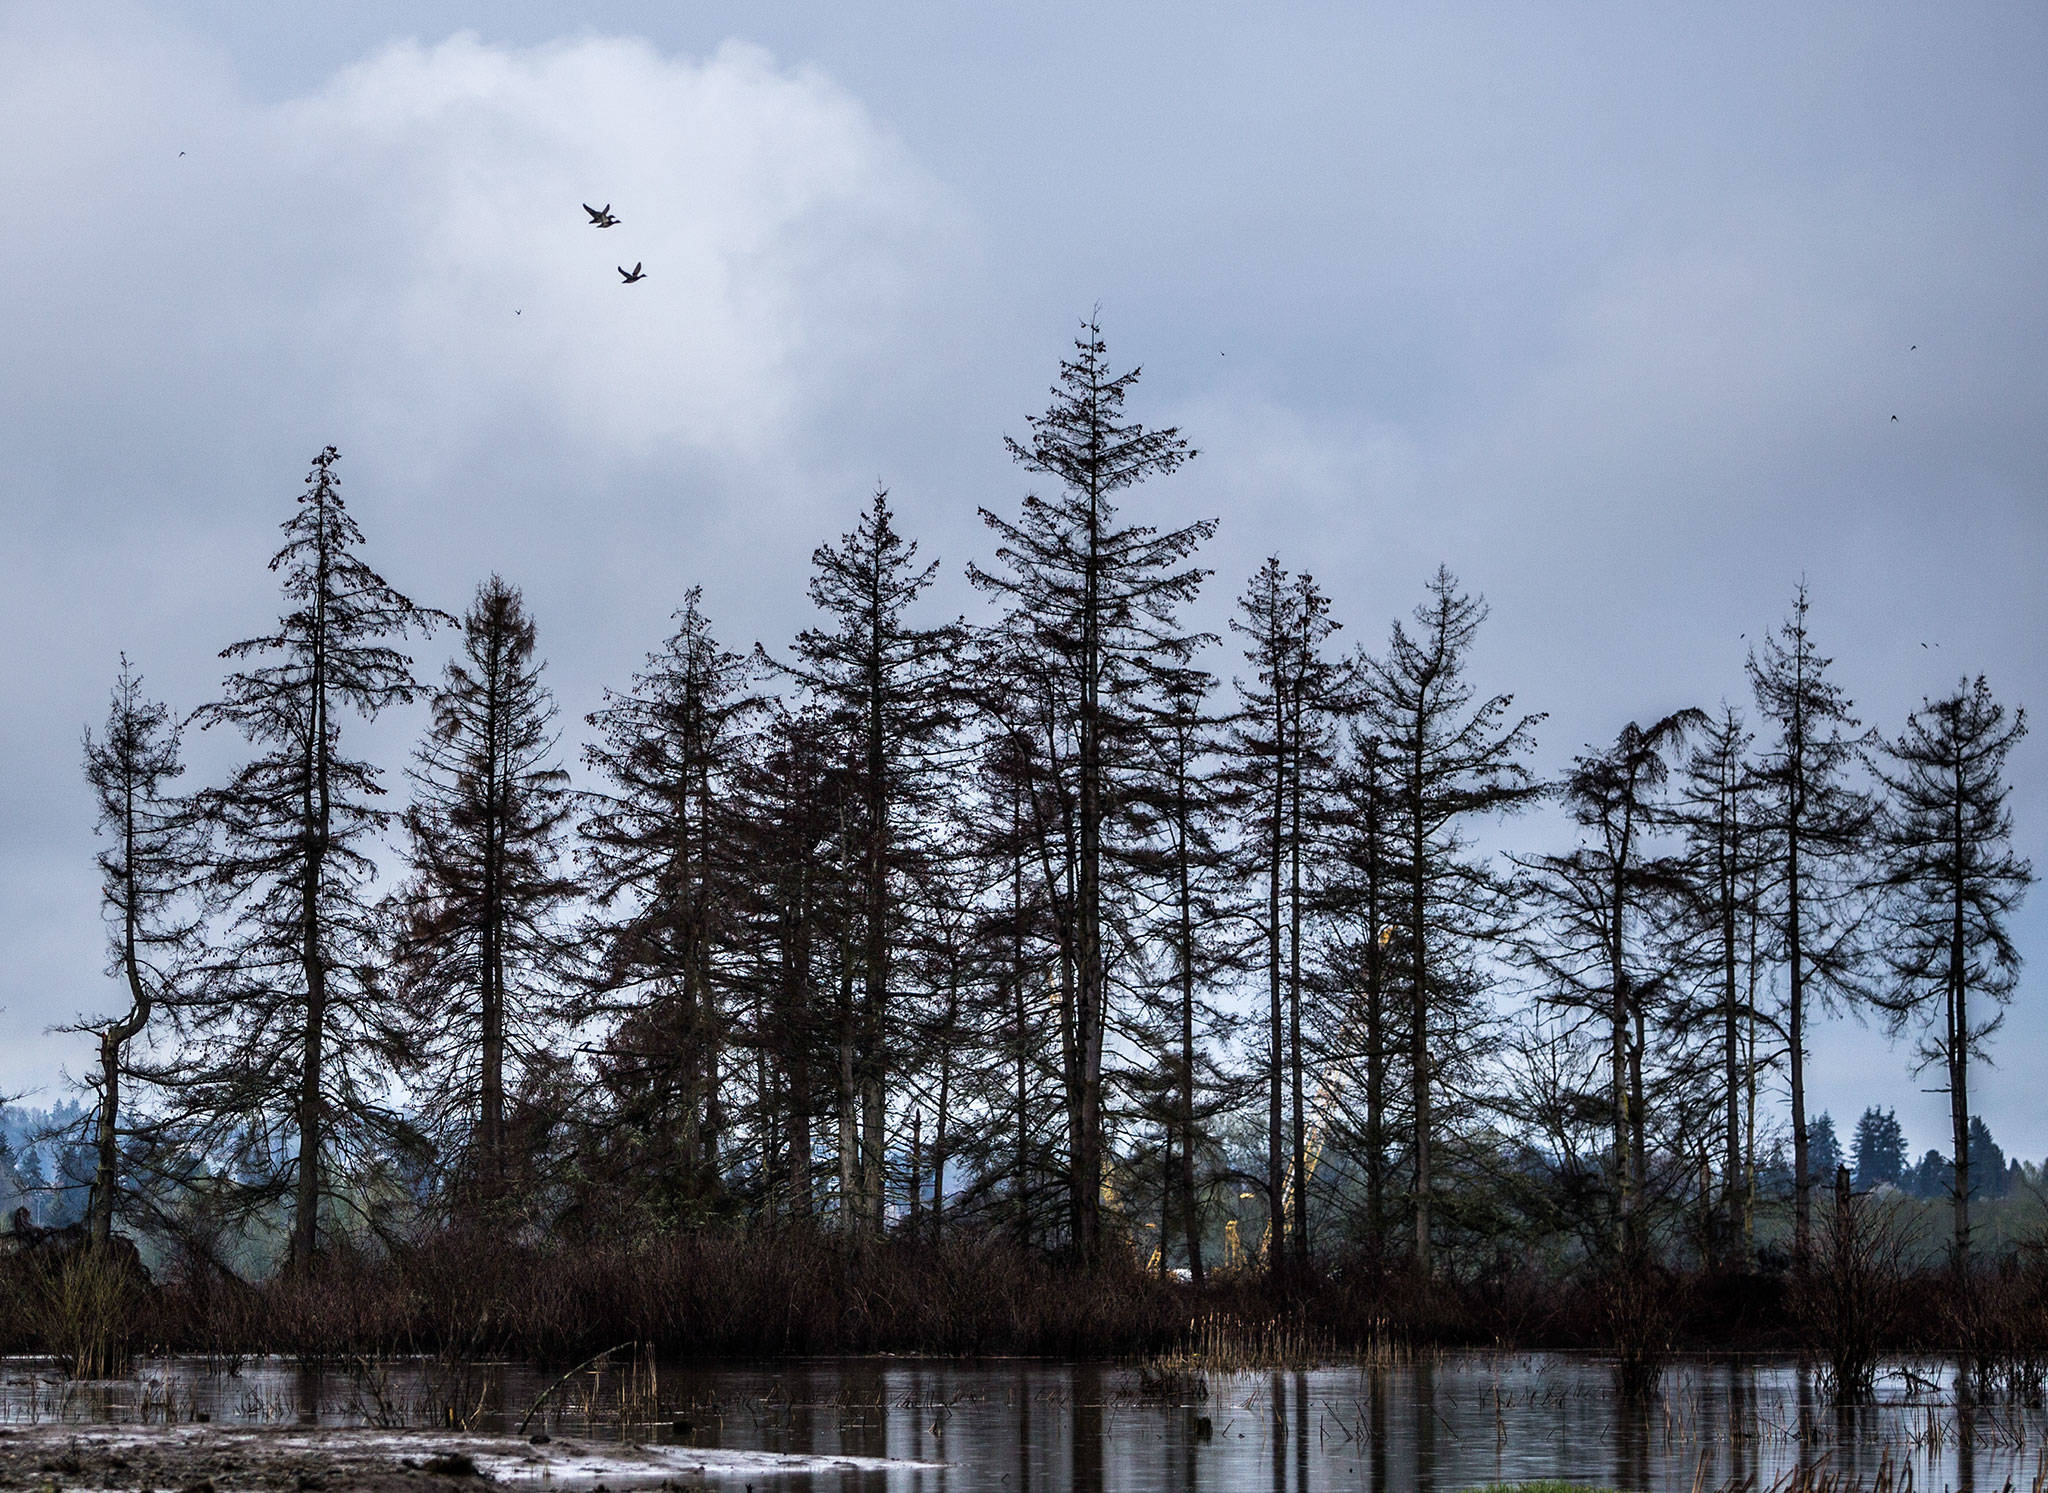 Ducks fly above the recently restored wetland area of Smith Island along Union Slough on April 11 in Everett. (Olivia Vanni / The Herald)